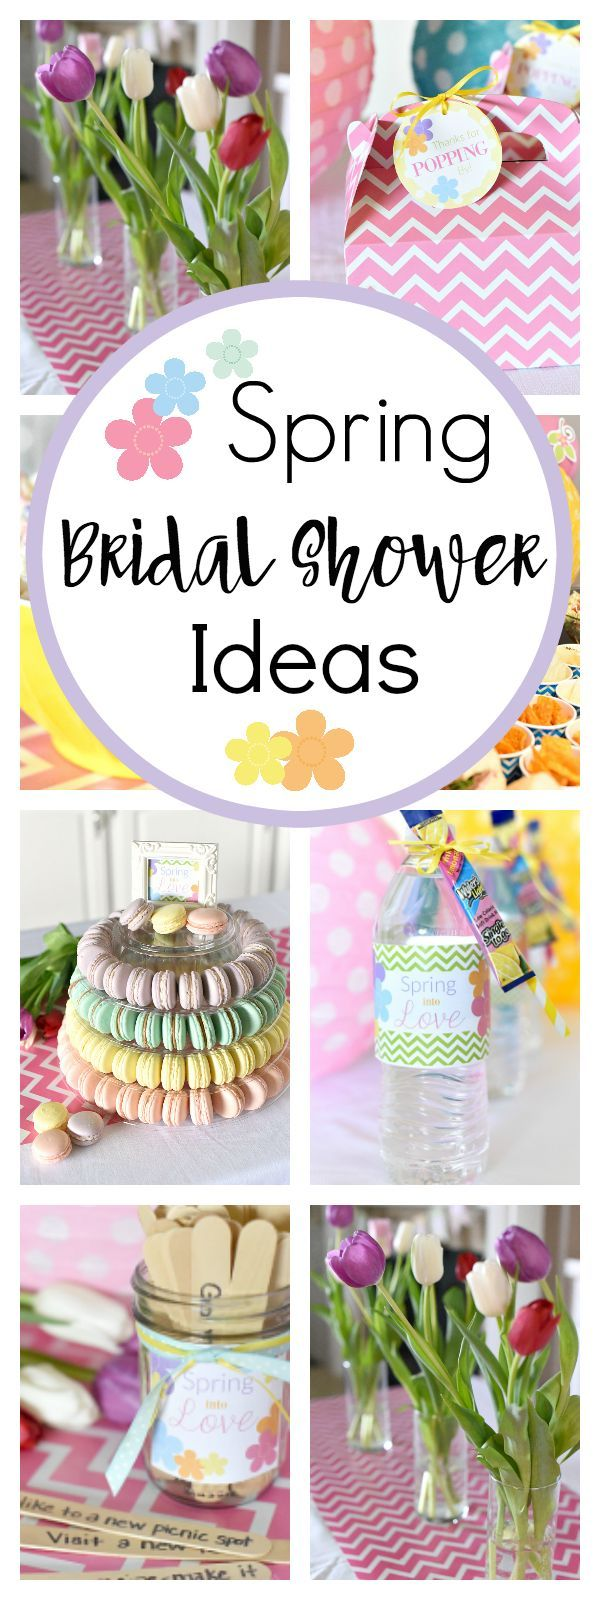 Spring Into Love Bridal Shower Party   Bridal showers, Favors and ...